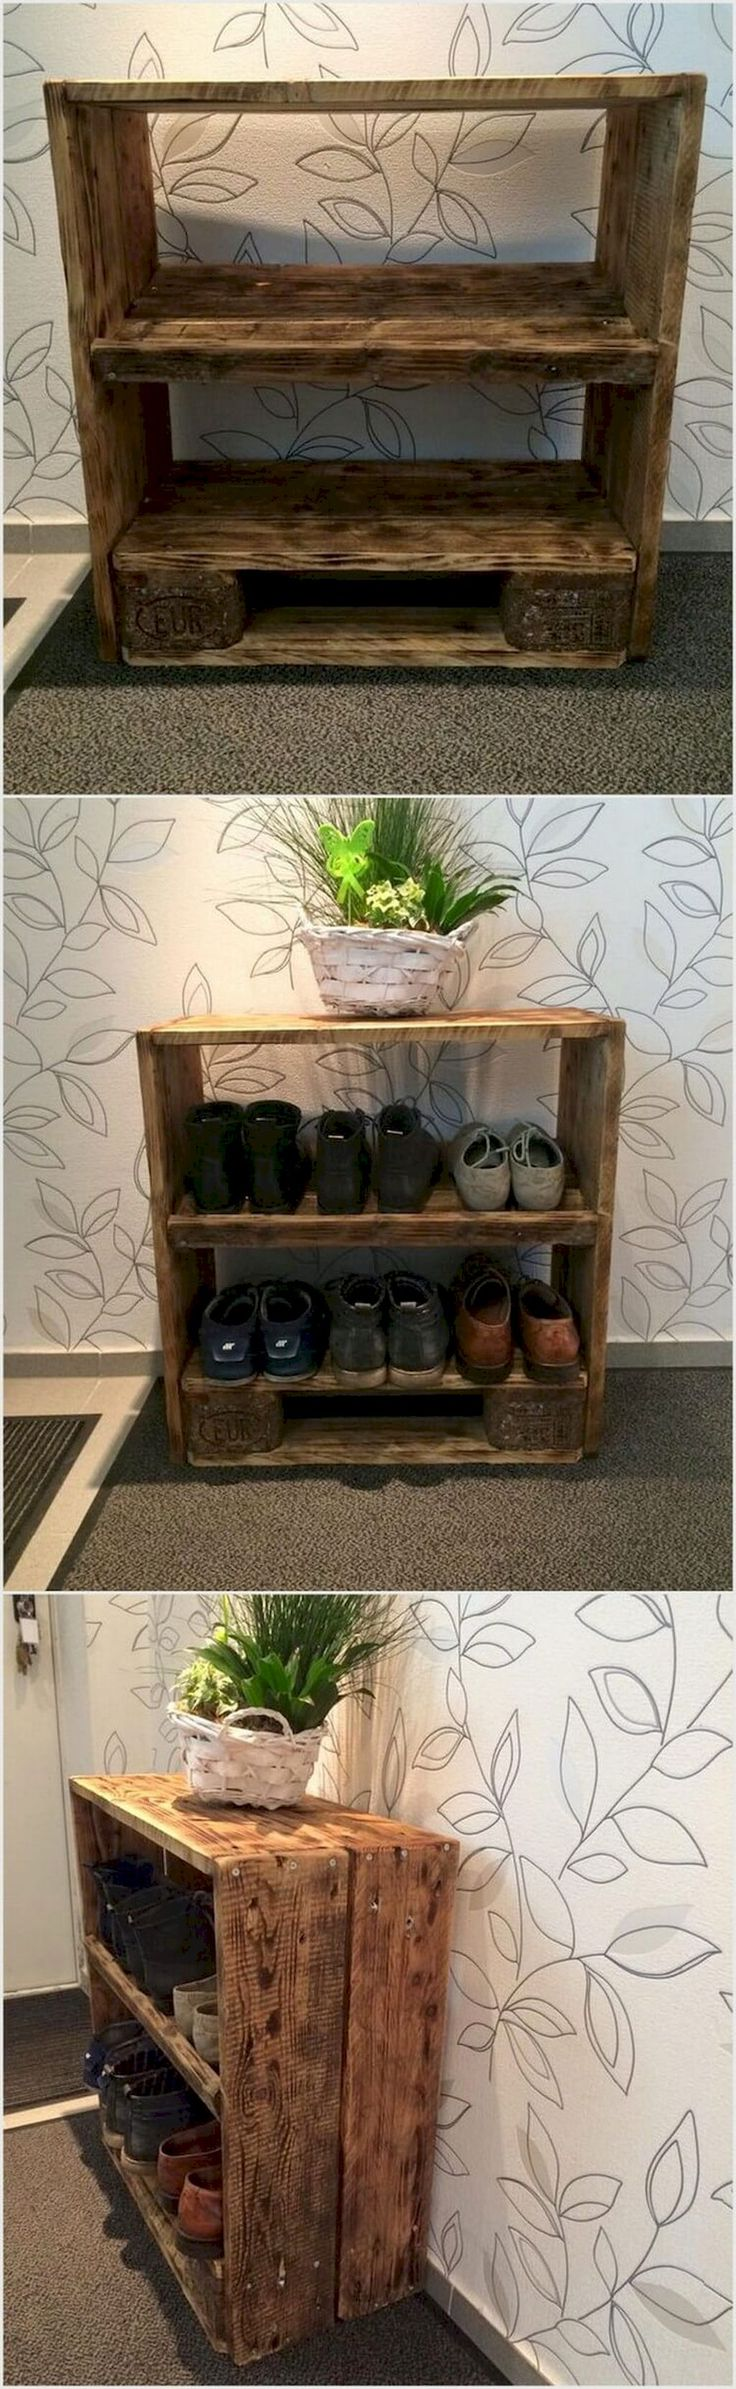 65 smart diy industrial shoe rack ideas